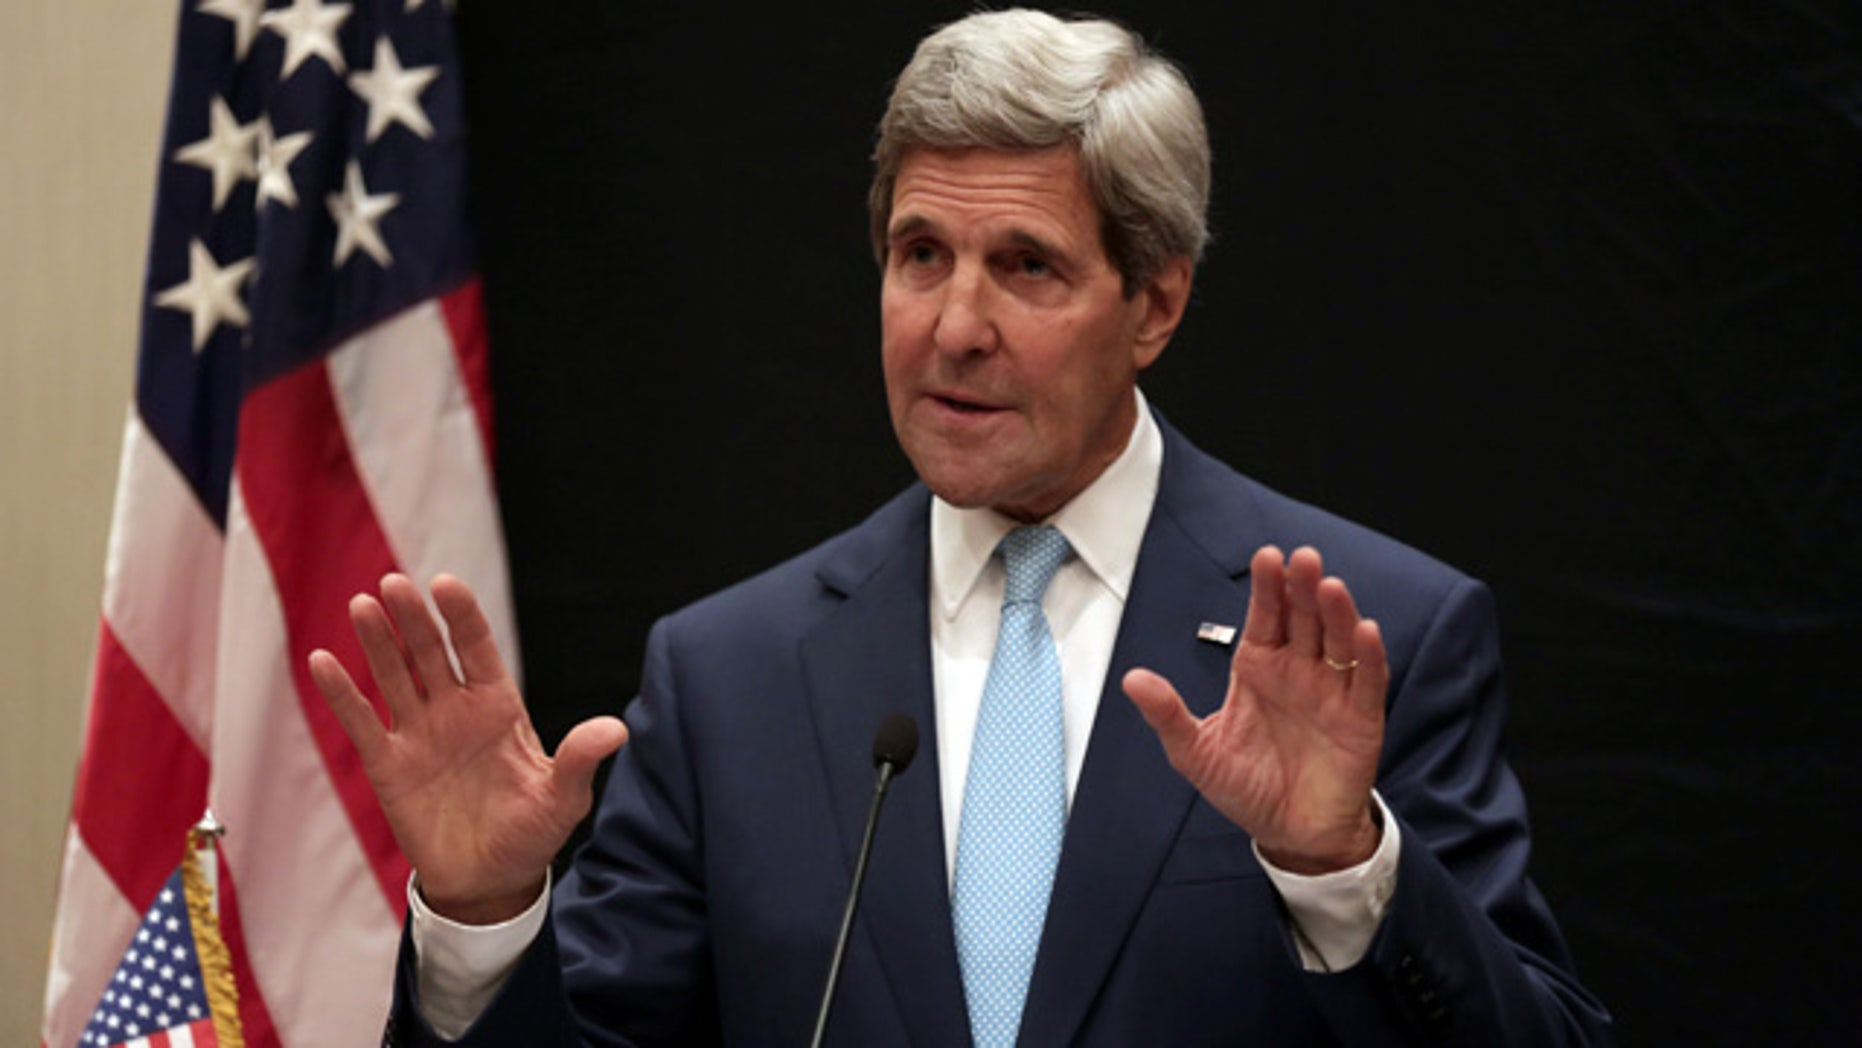 June 22, 2014: U.S. Secretary of State John Kerry speaks during a joint news conference with Egyptian Foreign Minister Sameh Shoukry following his meeting with Egyptian President Abdel-Fattah el-Sissi in Cairo. (AP Photo/Maya Alleruzzo)